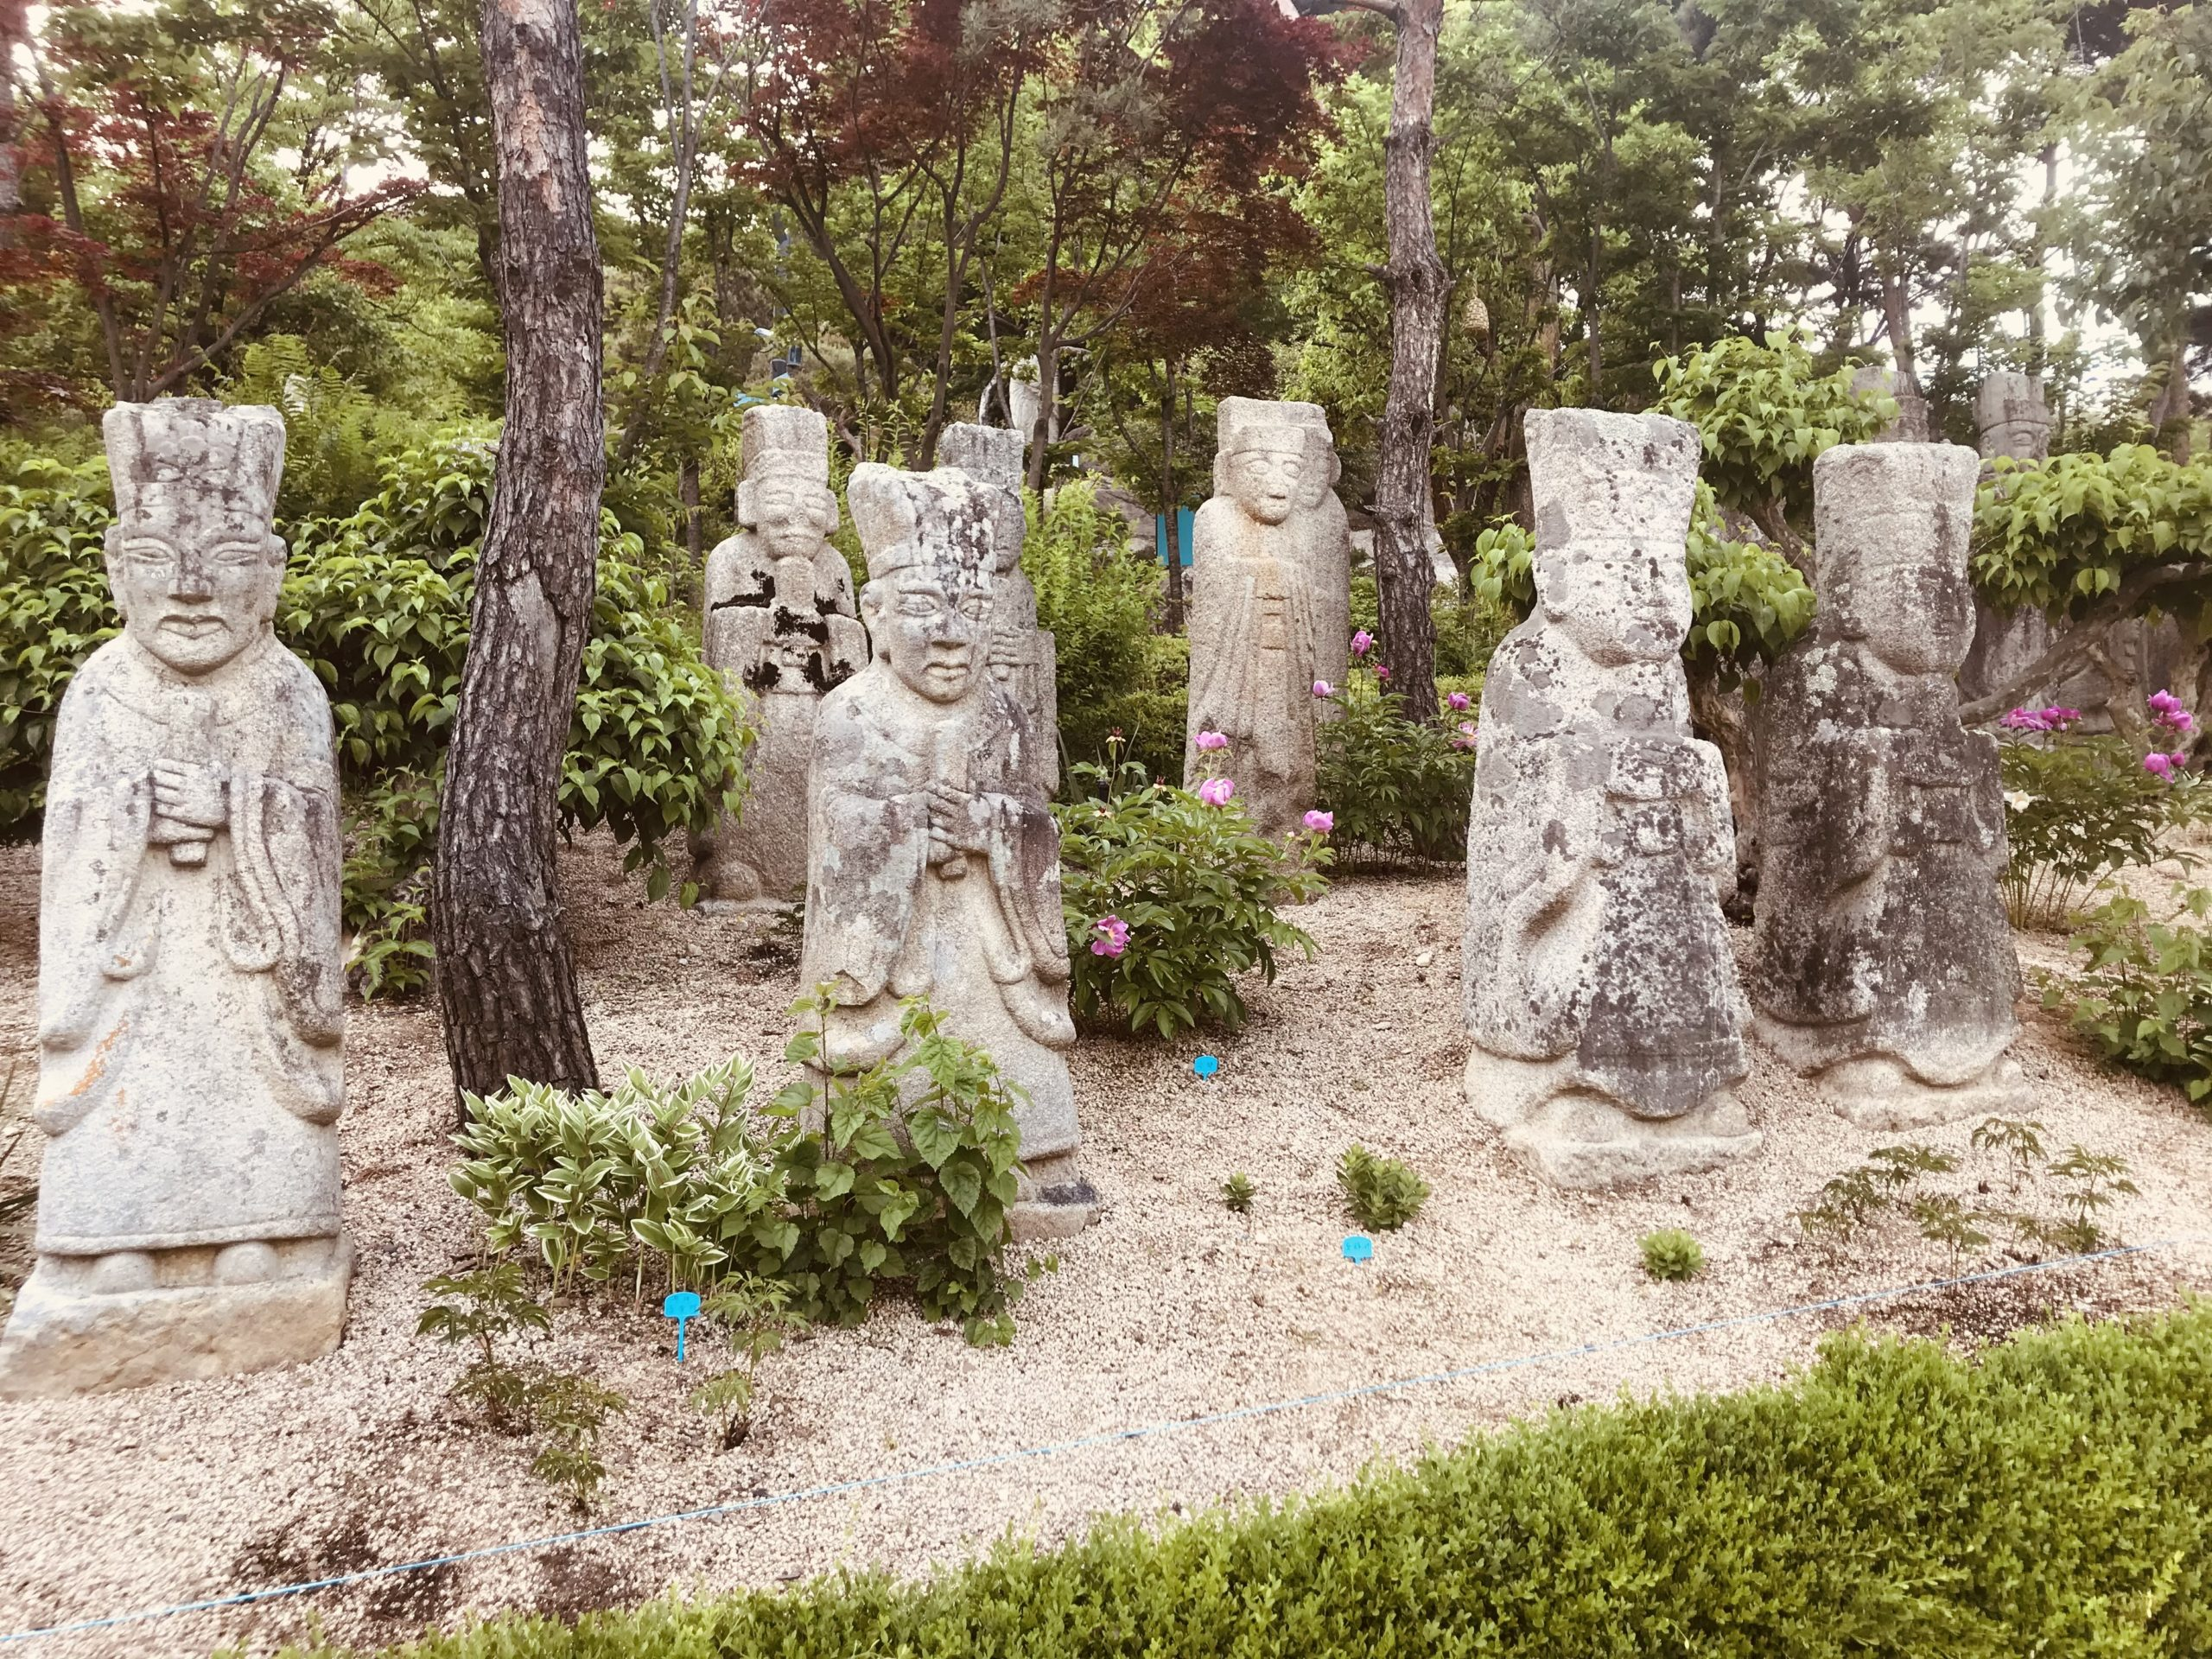 Korean stone sculptures from the Joseon Dynasty, in an outdoor exhibit at the Korean Stone Art Museum. Eight light stone sculptures, in the form of human figures with hands clasped, stand in a grove of gravel, bushes, and trees.